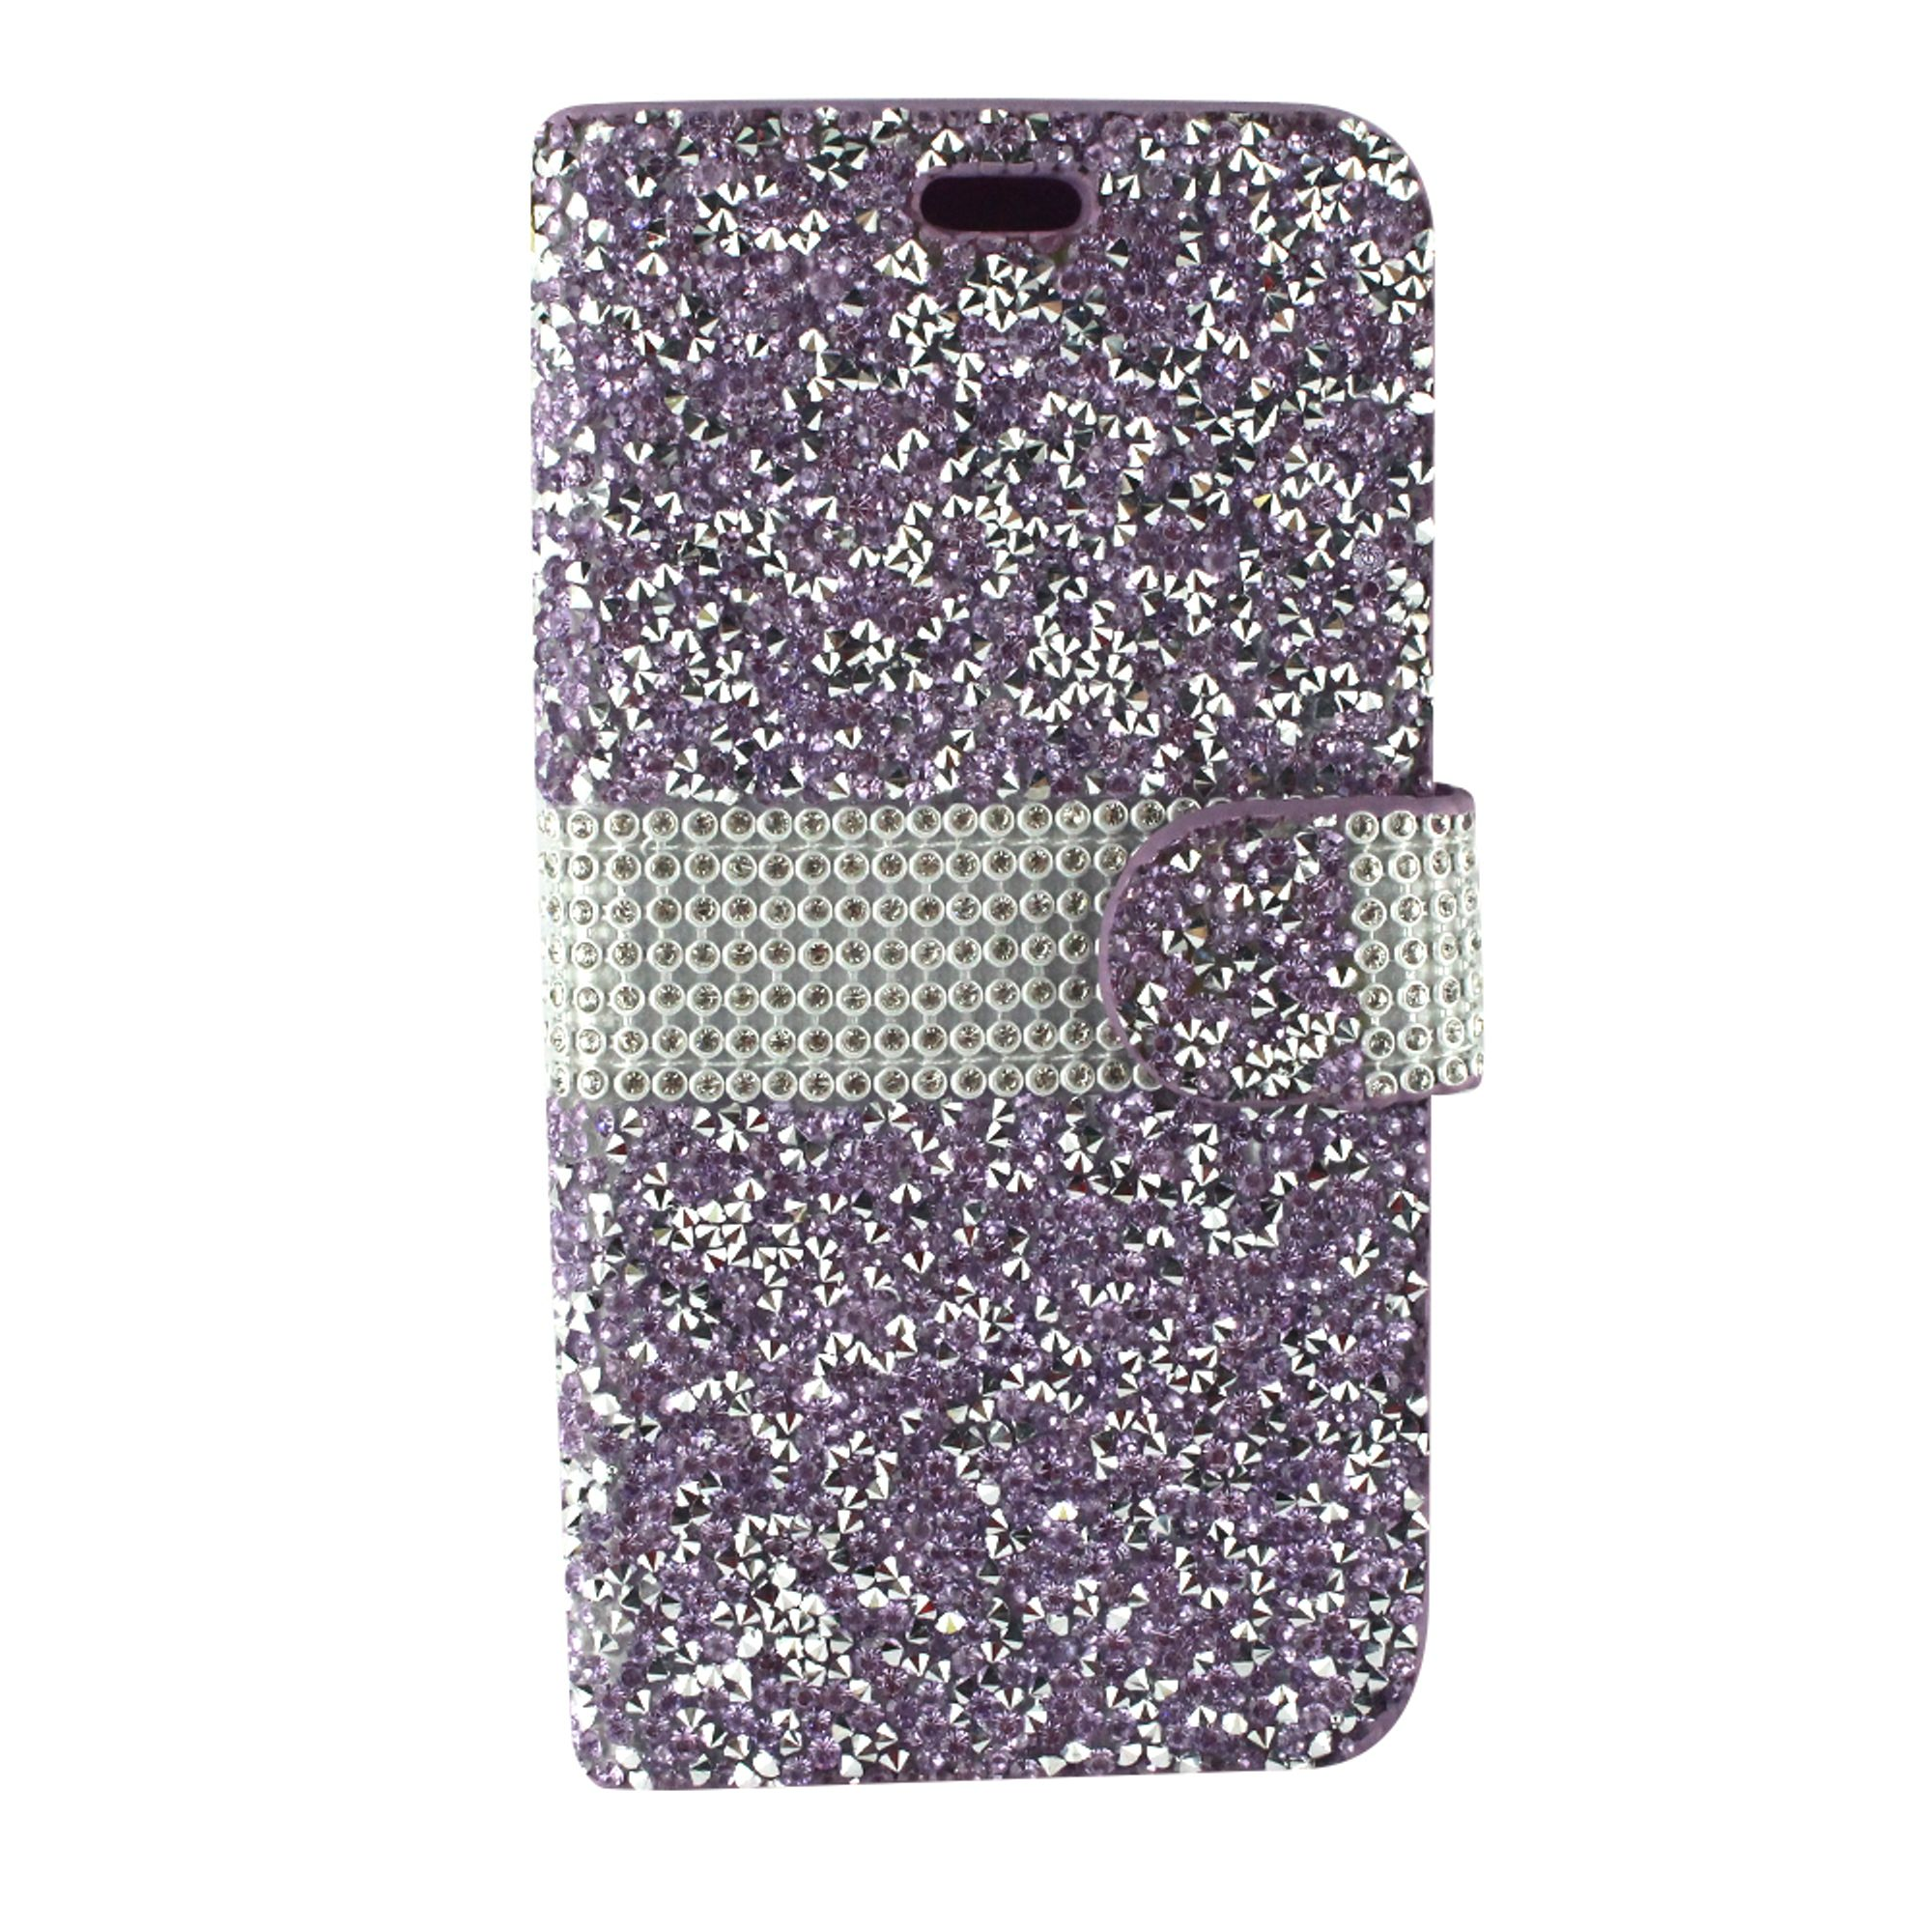 LG Aristo 2 phone case by Insten Book-Style Rhinestone Diamond Bling Leather [Card Holder Slot] Wallet Pouch Case Cover For LG Aristo 2/K8 (2018)/Tribute Dynasty